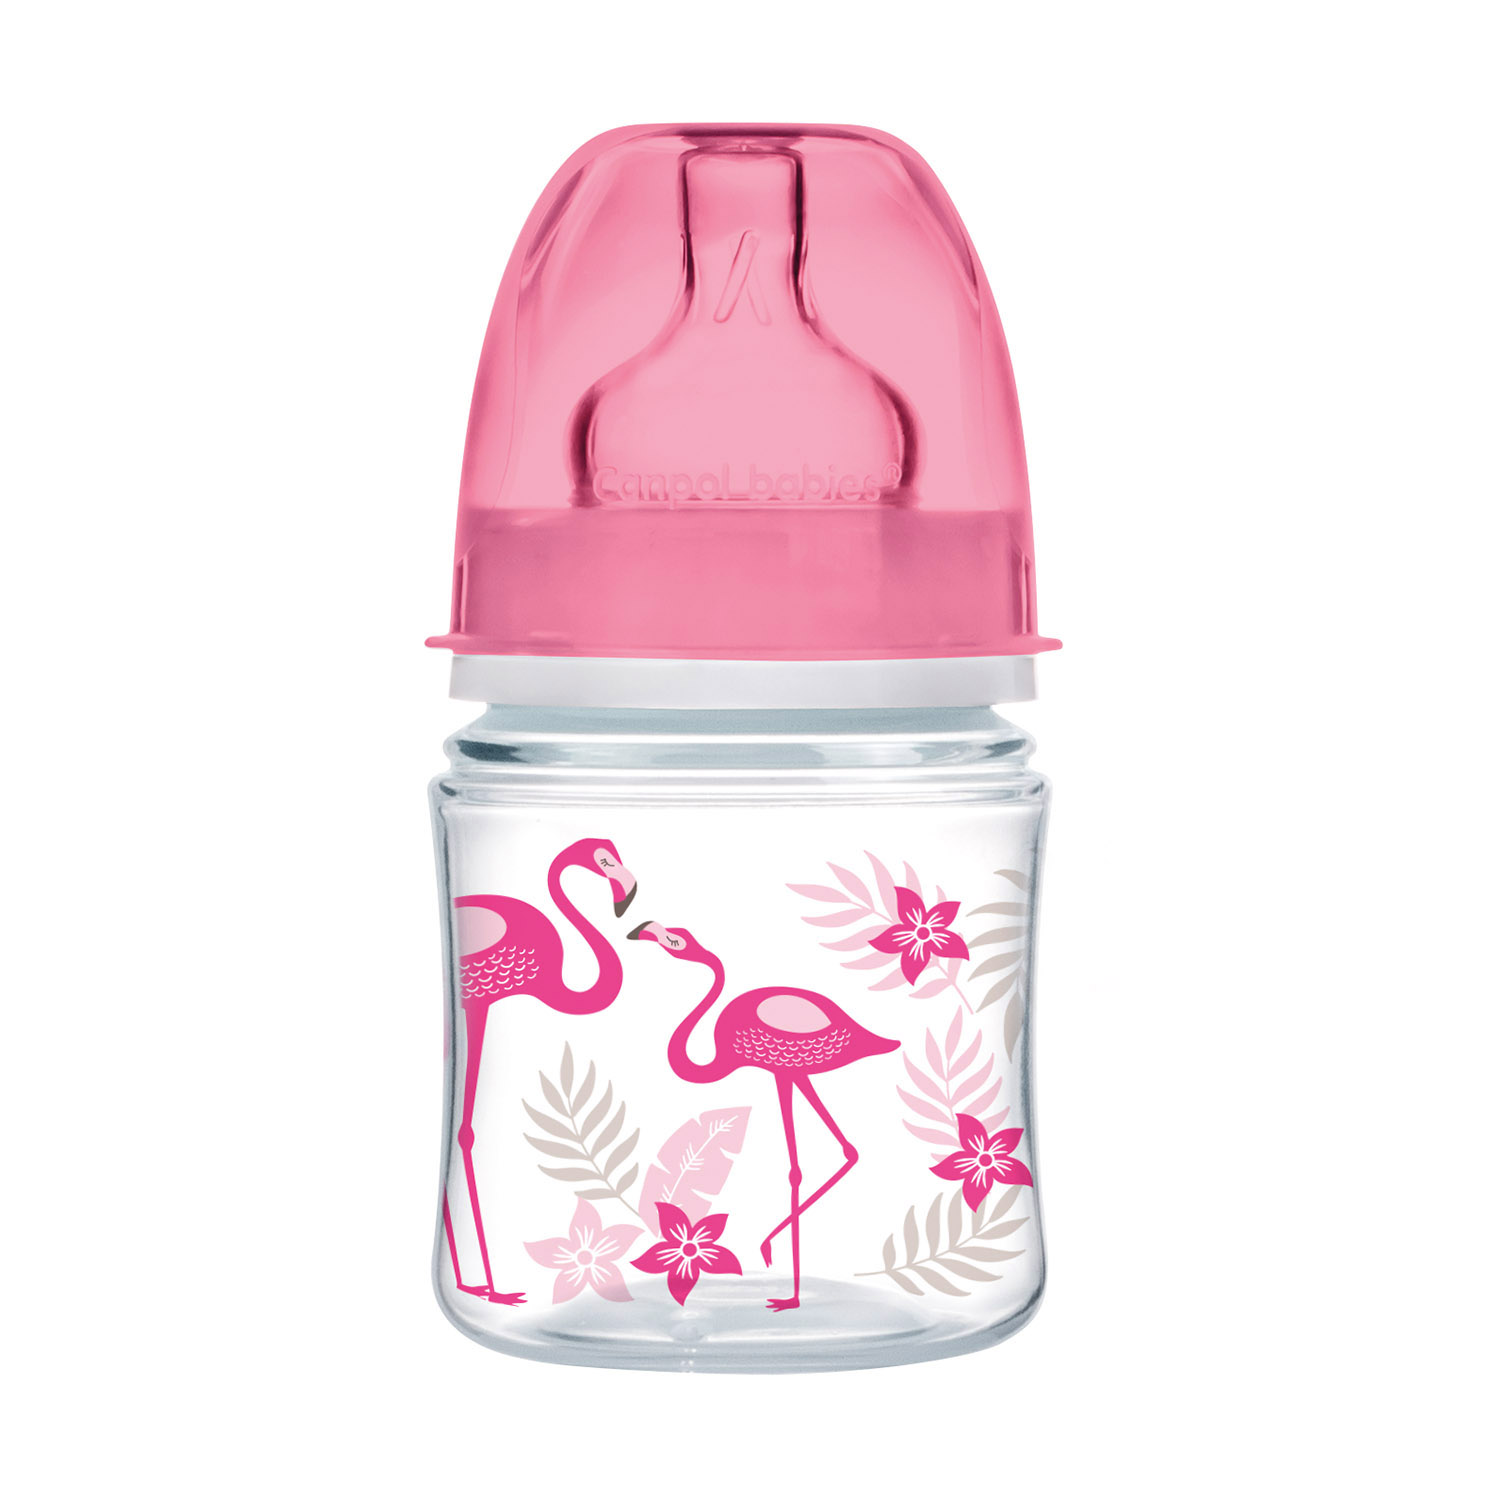 Canpol babies EasyStart Anti-colic Wide Neck Bottle 120ml PP JUNGLE coral